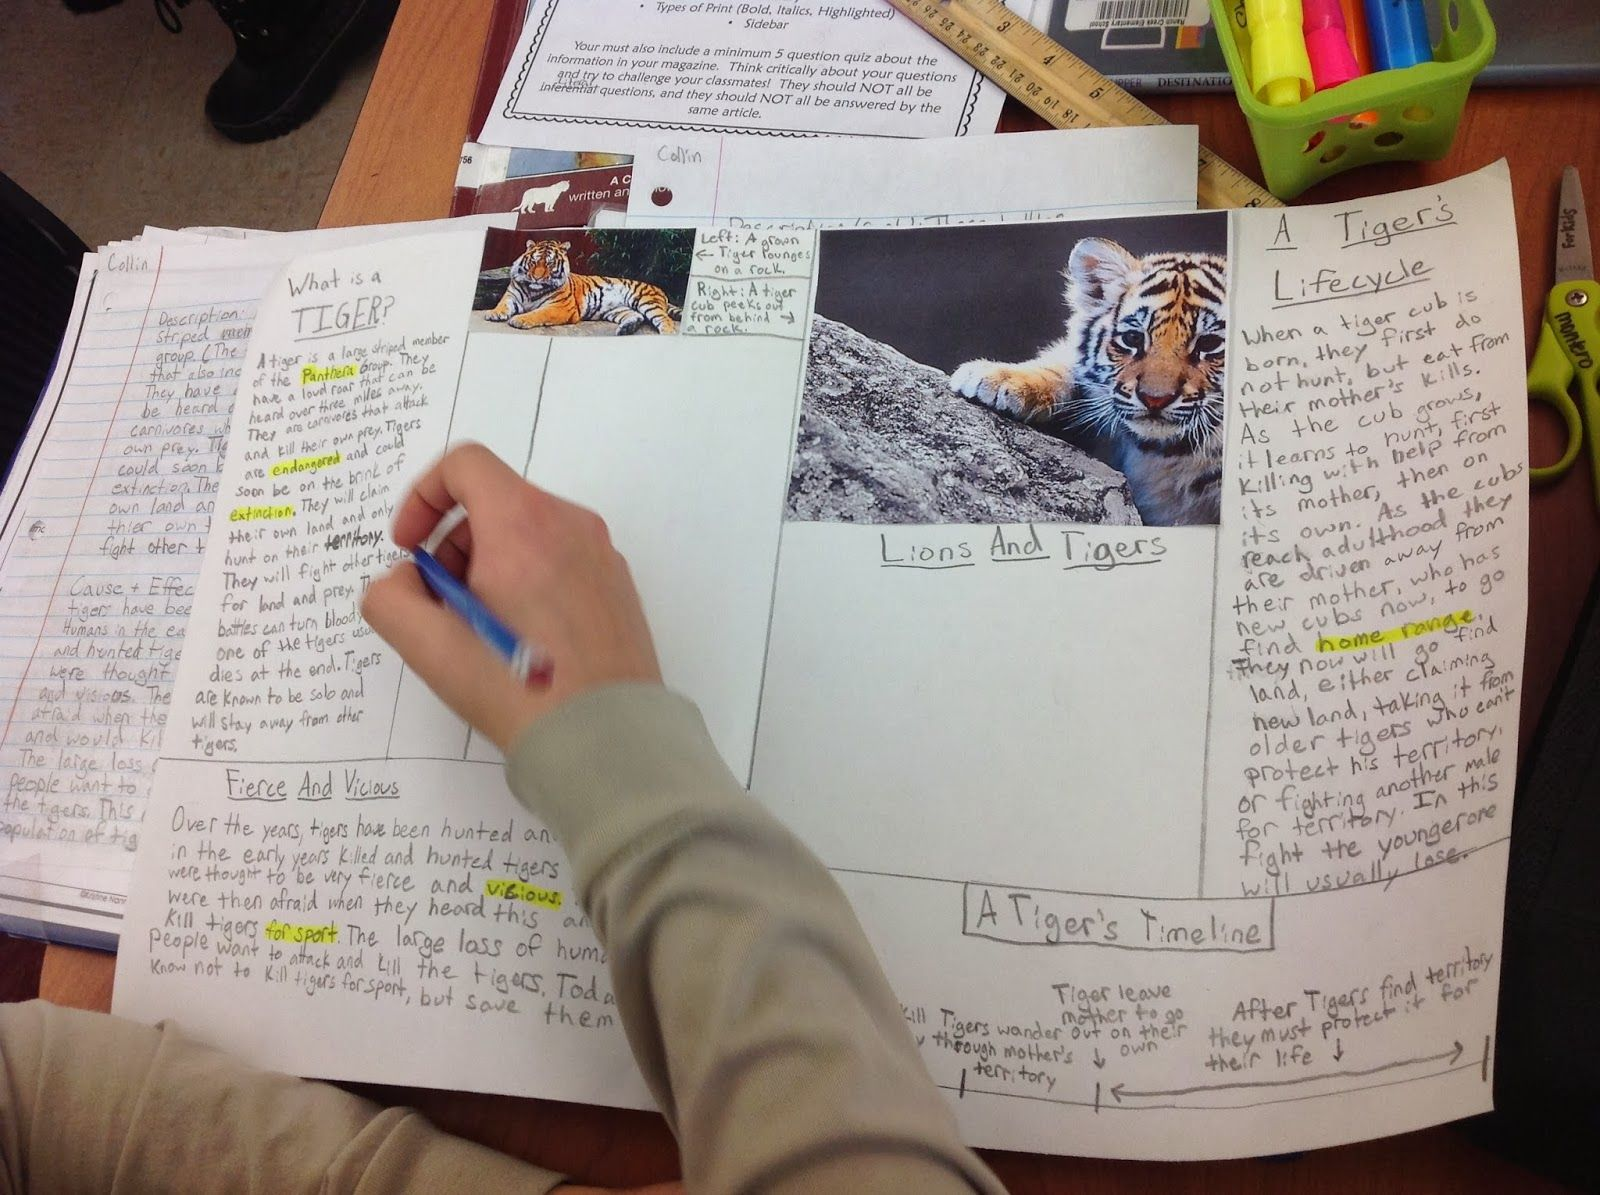 worksheet Text Structure Worksheets 5th Grade 17 best images about reading text structure on pinterest games texts and graphic organizers